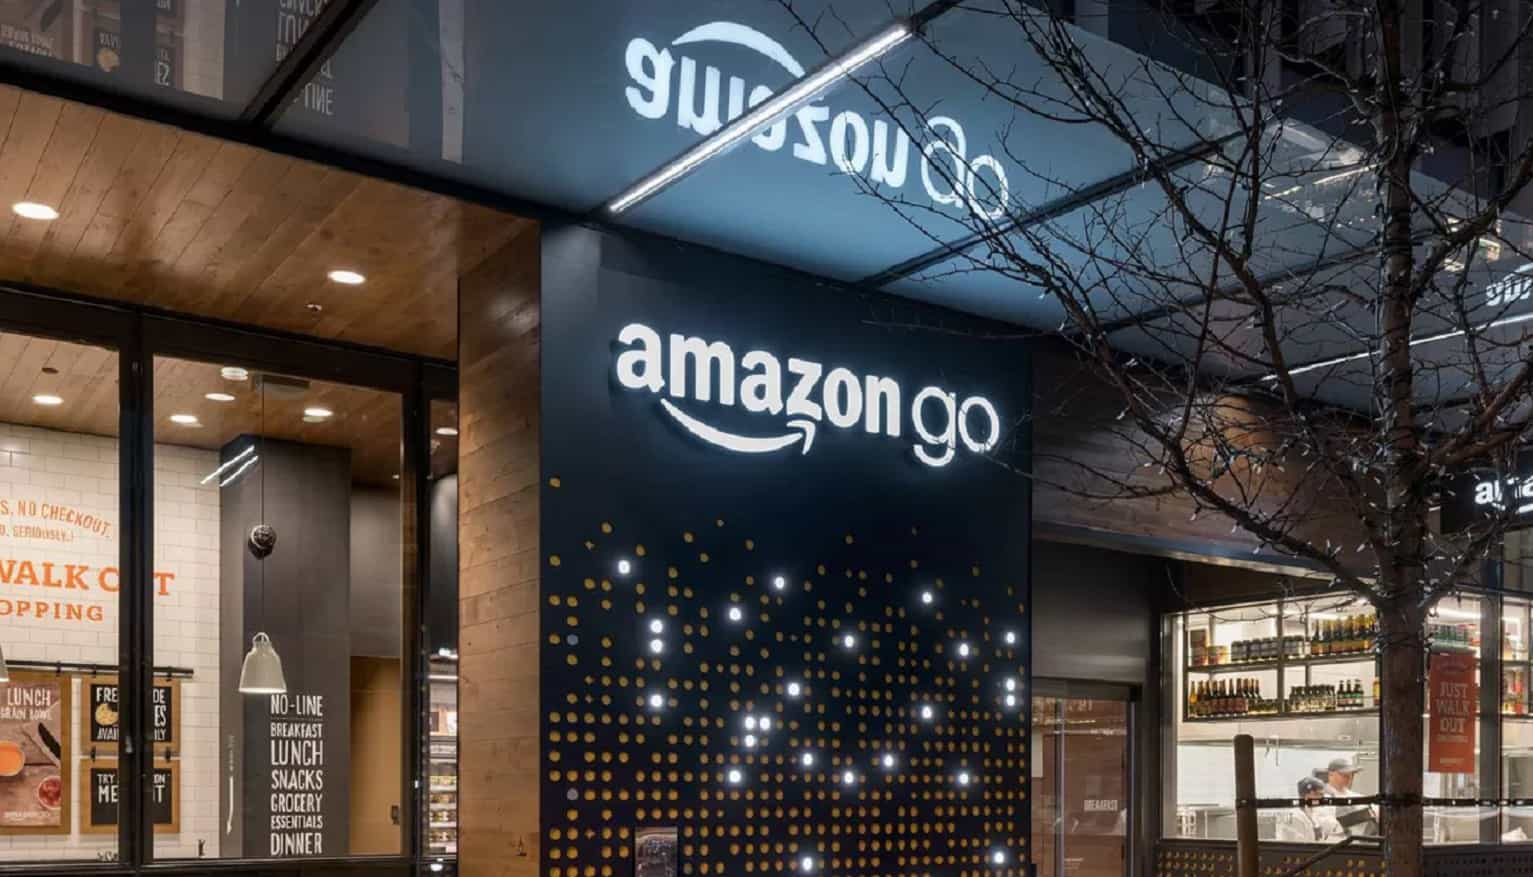 an amazon go store with bright lights